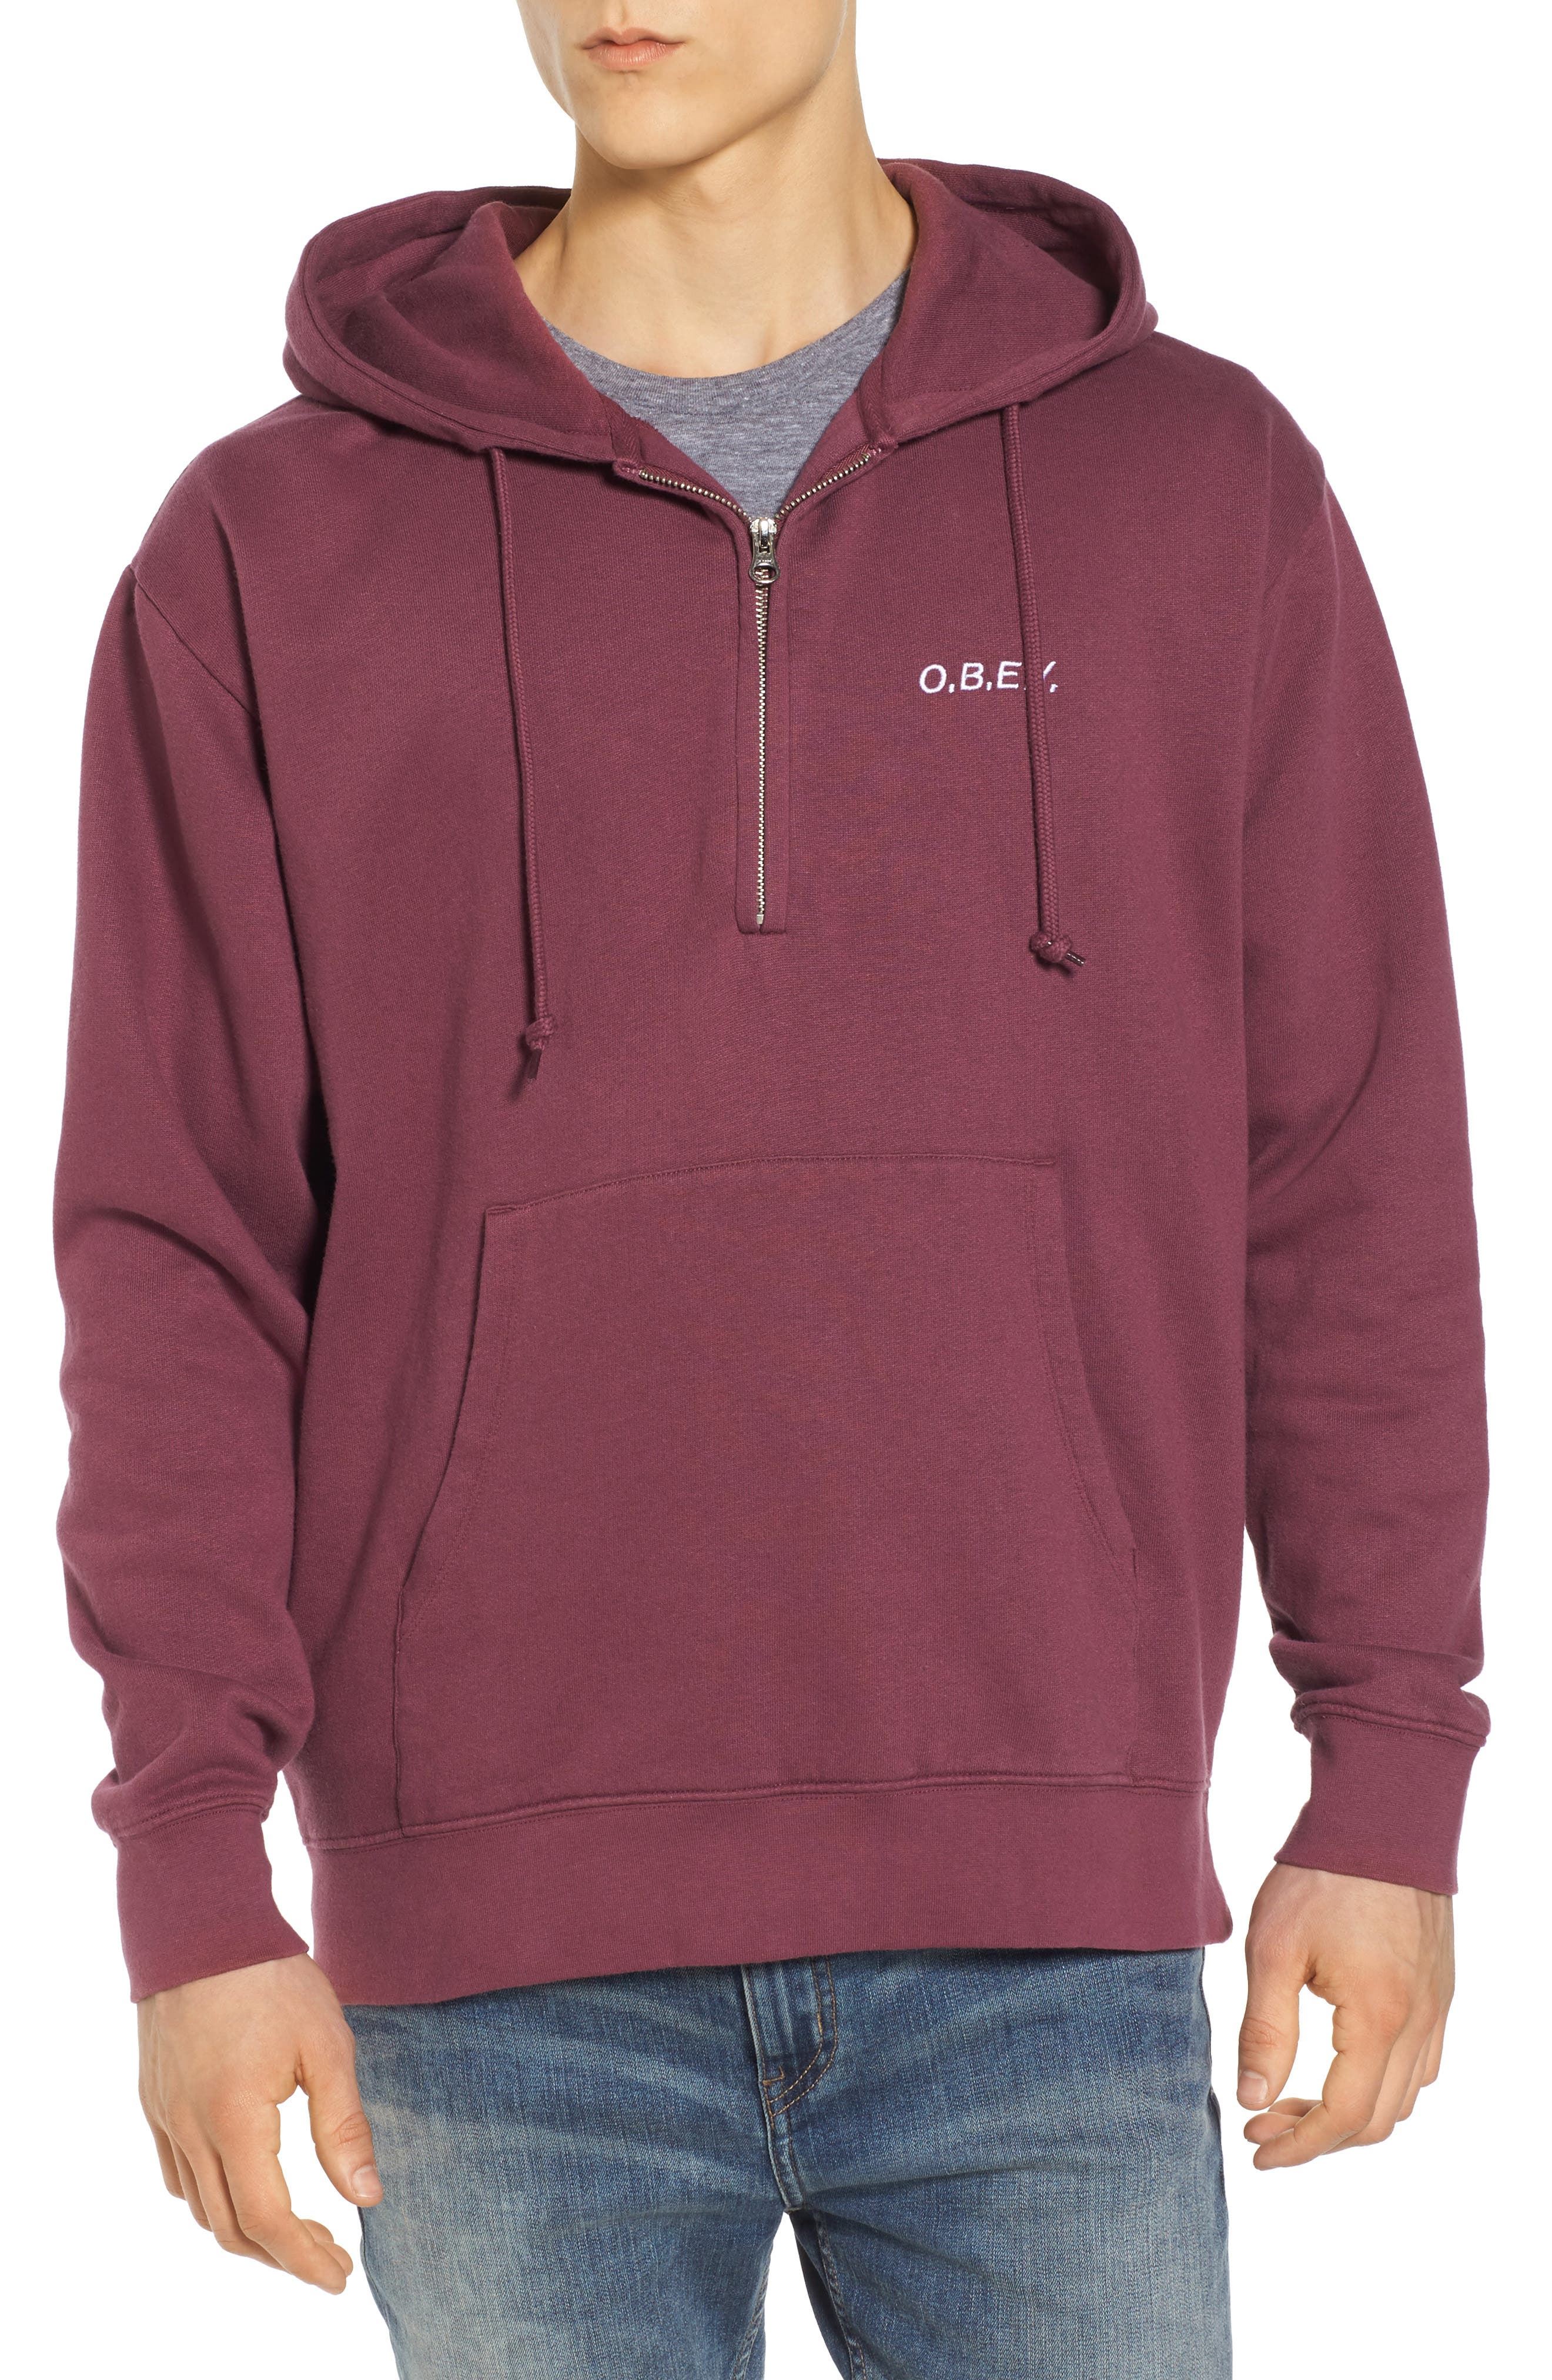 Main Image - Obey Ennet Hooded Pullover